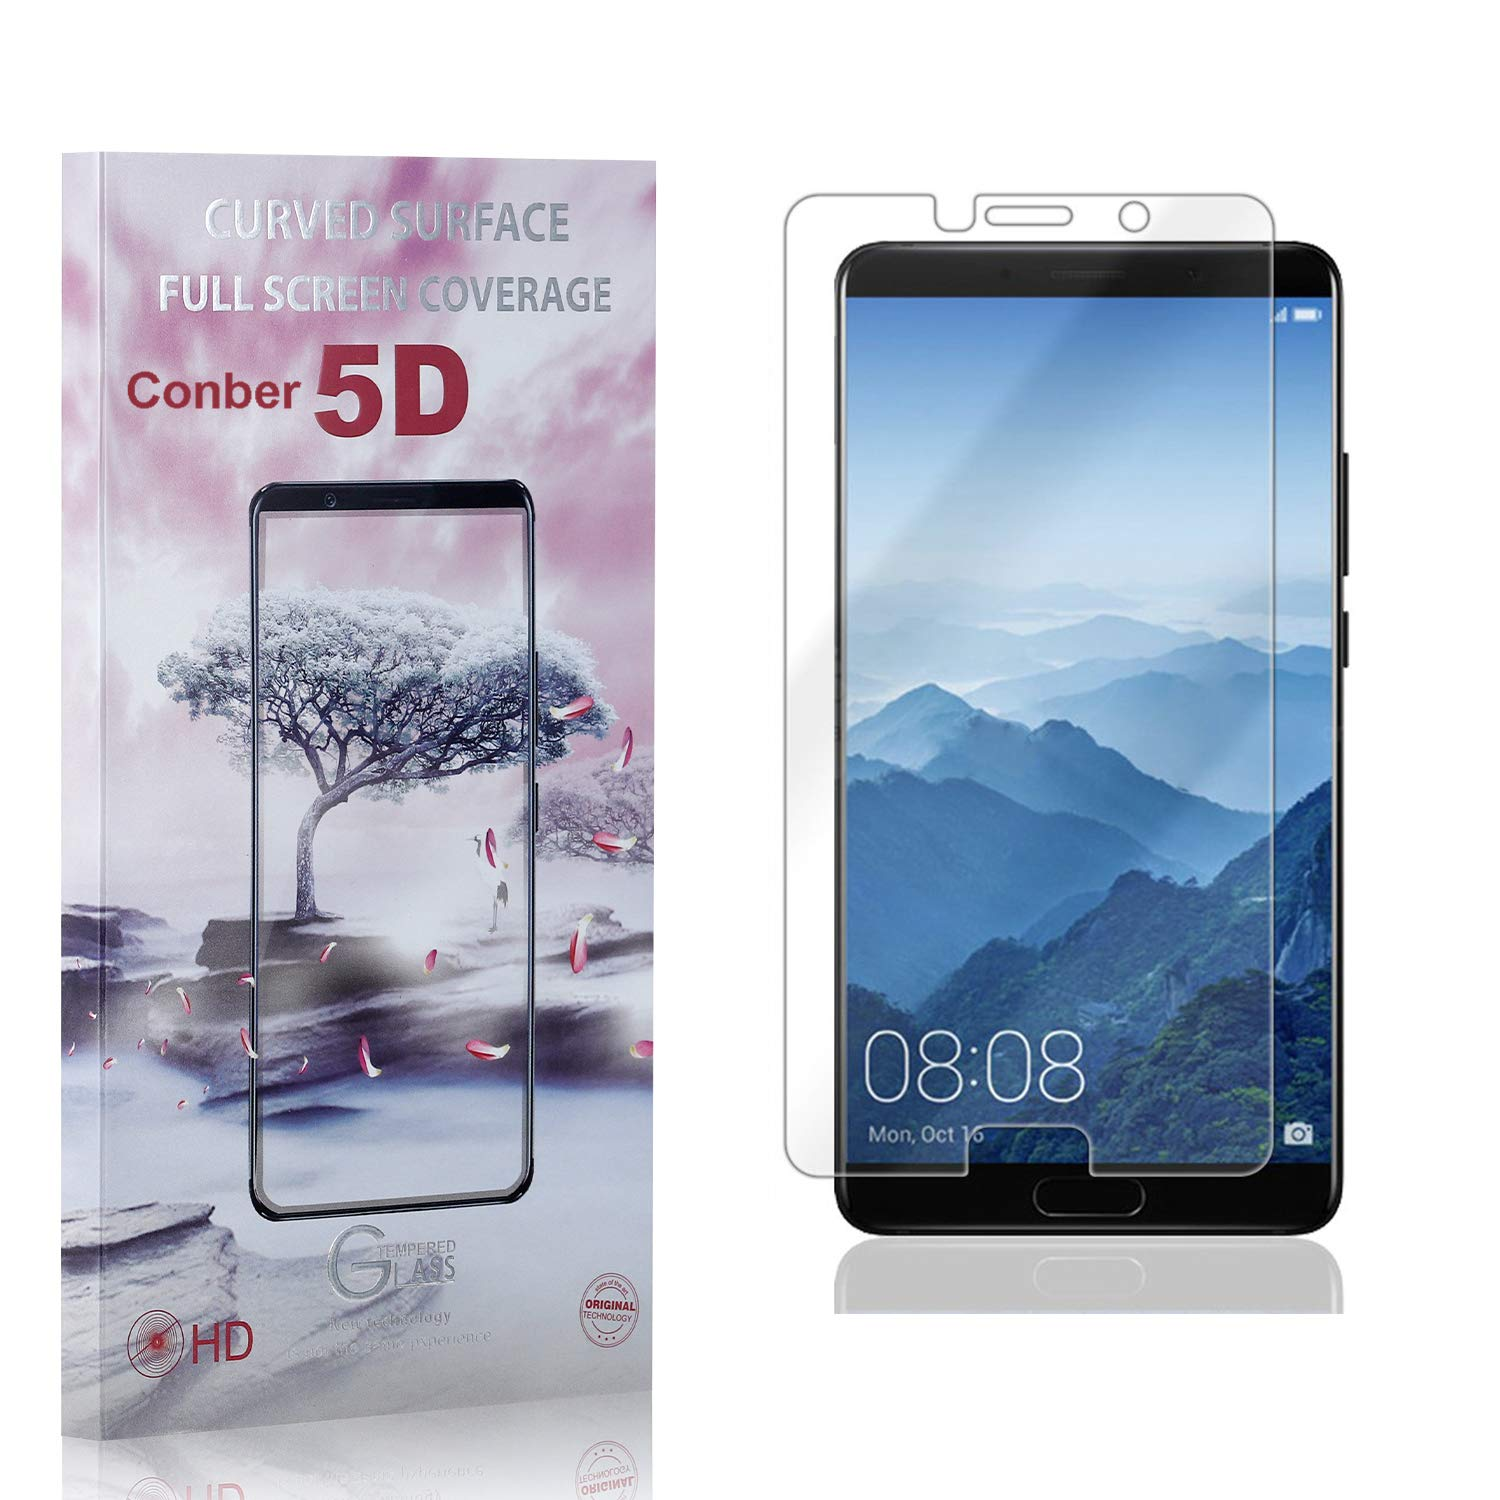 Conber 4 Max 64% OFF Pack 35% OFF Screen Protector Mate 10 Huawei Anti-Shatt for